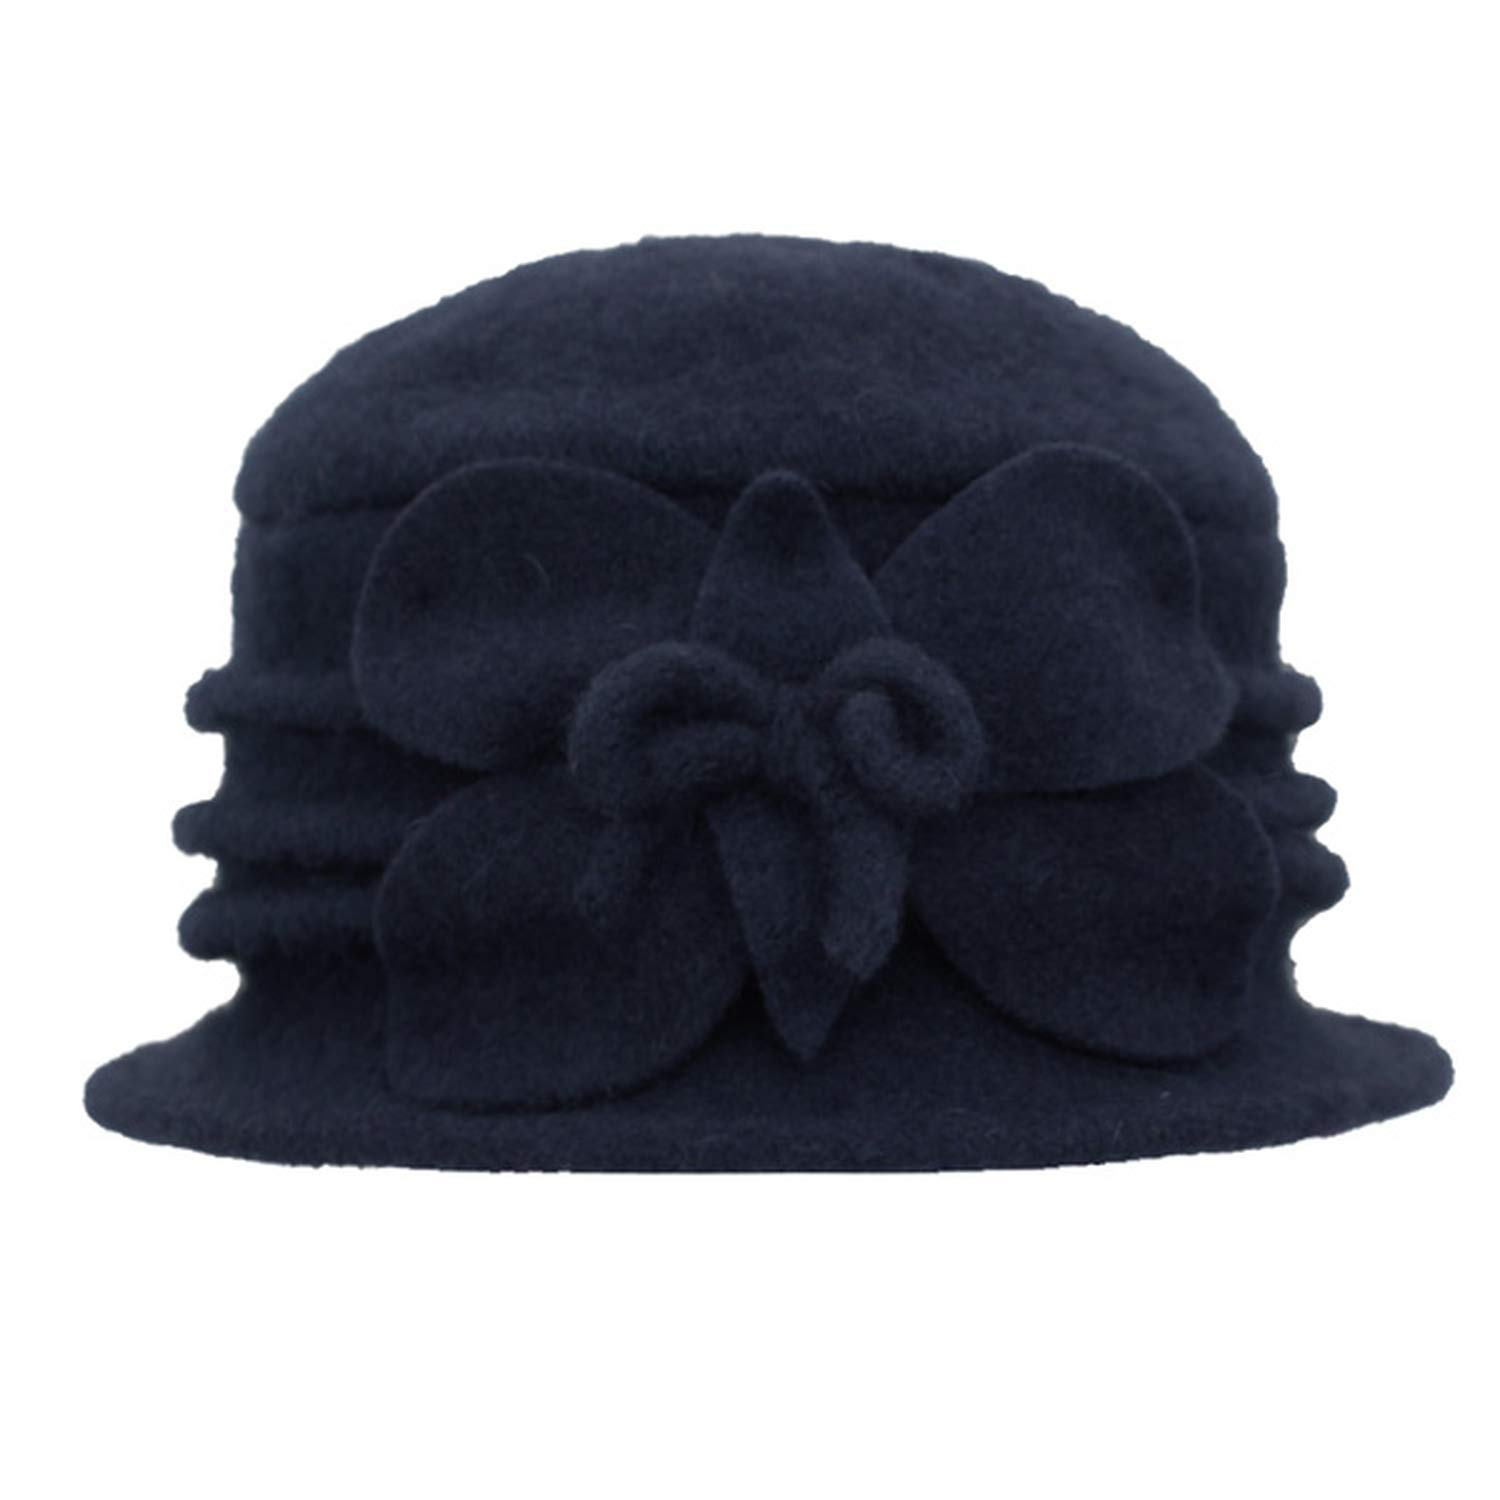 DOSOMI Autumn Winter Women Fedoras 100/% Wool Dome Hats Ladies Girl Soft Floral Casual Warm hat